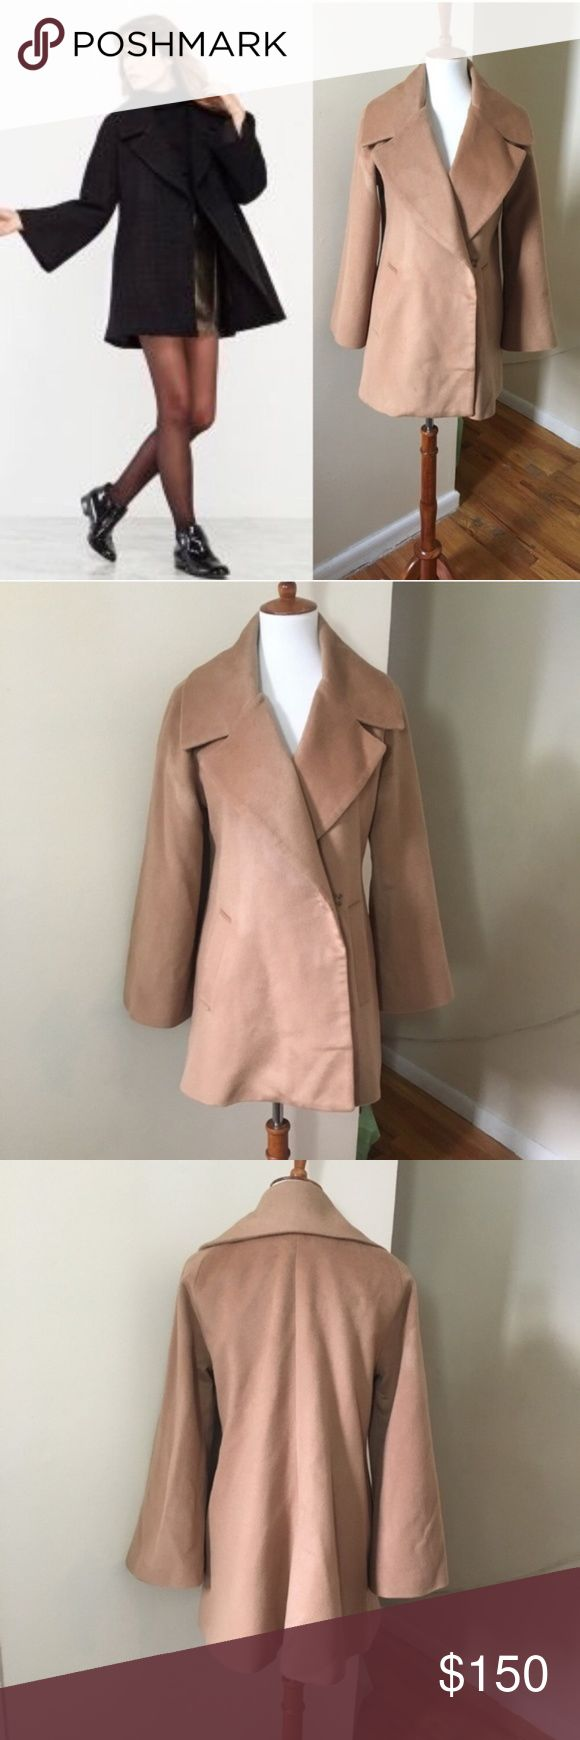 RARE Reformation Fisher Coat *REPOSH* too small in arms for me ; (  Excellent condition Very rare Reformation Fisher Coat Size Large  Size and fabric ...